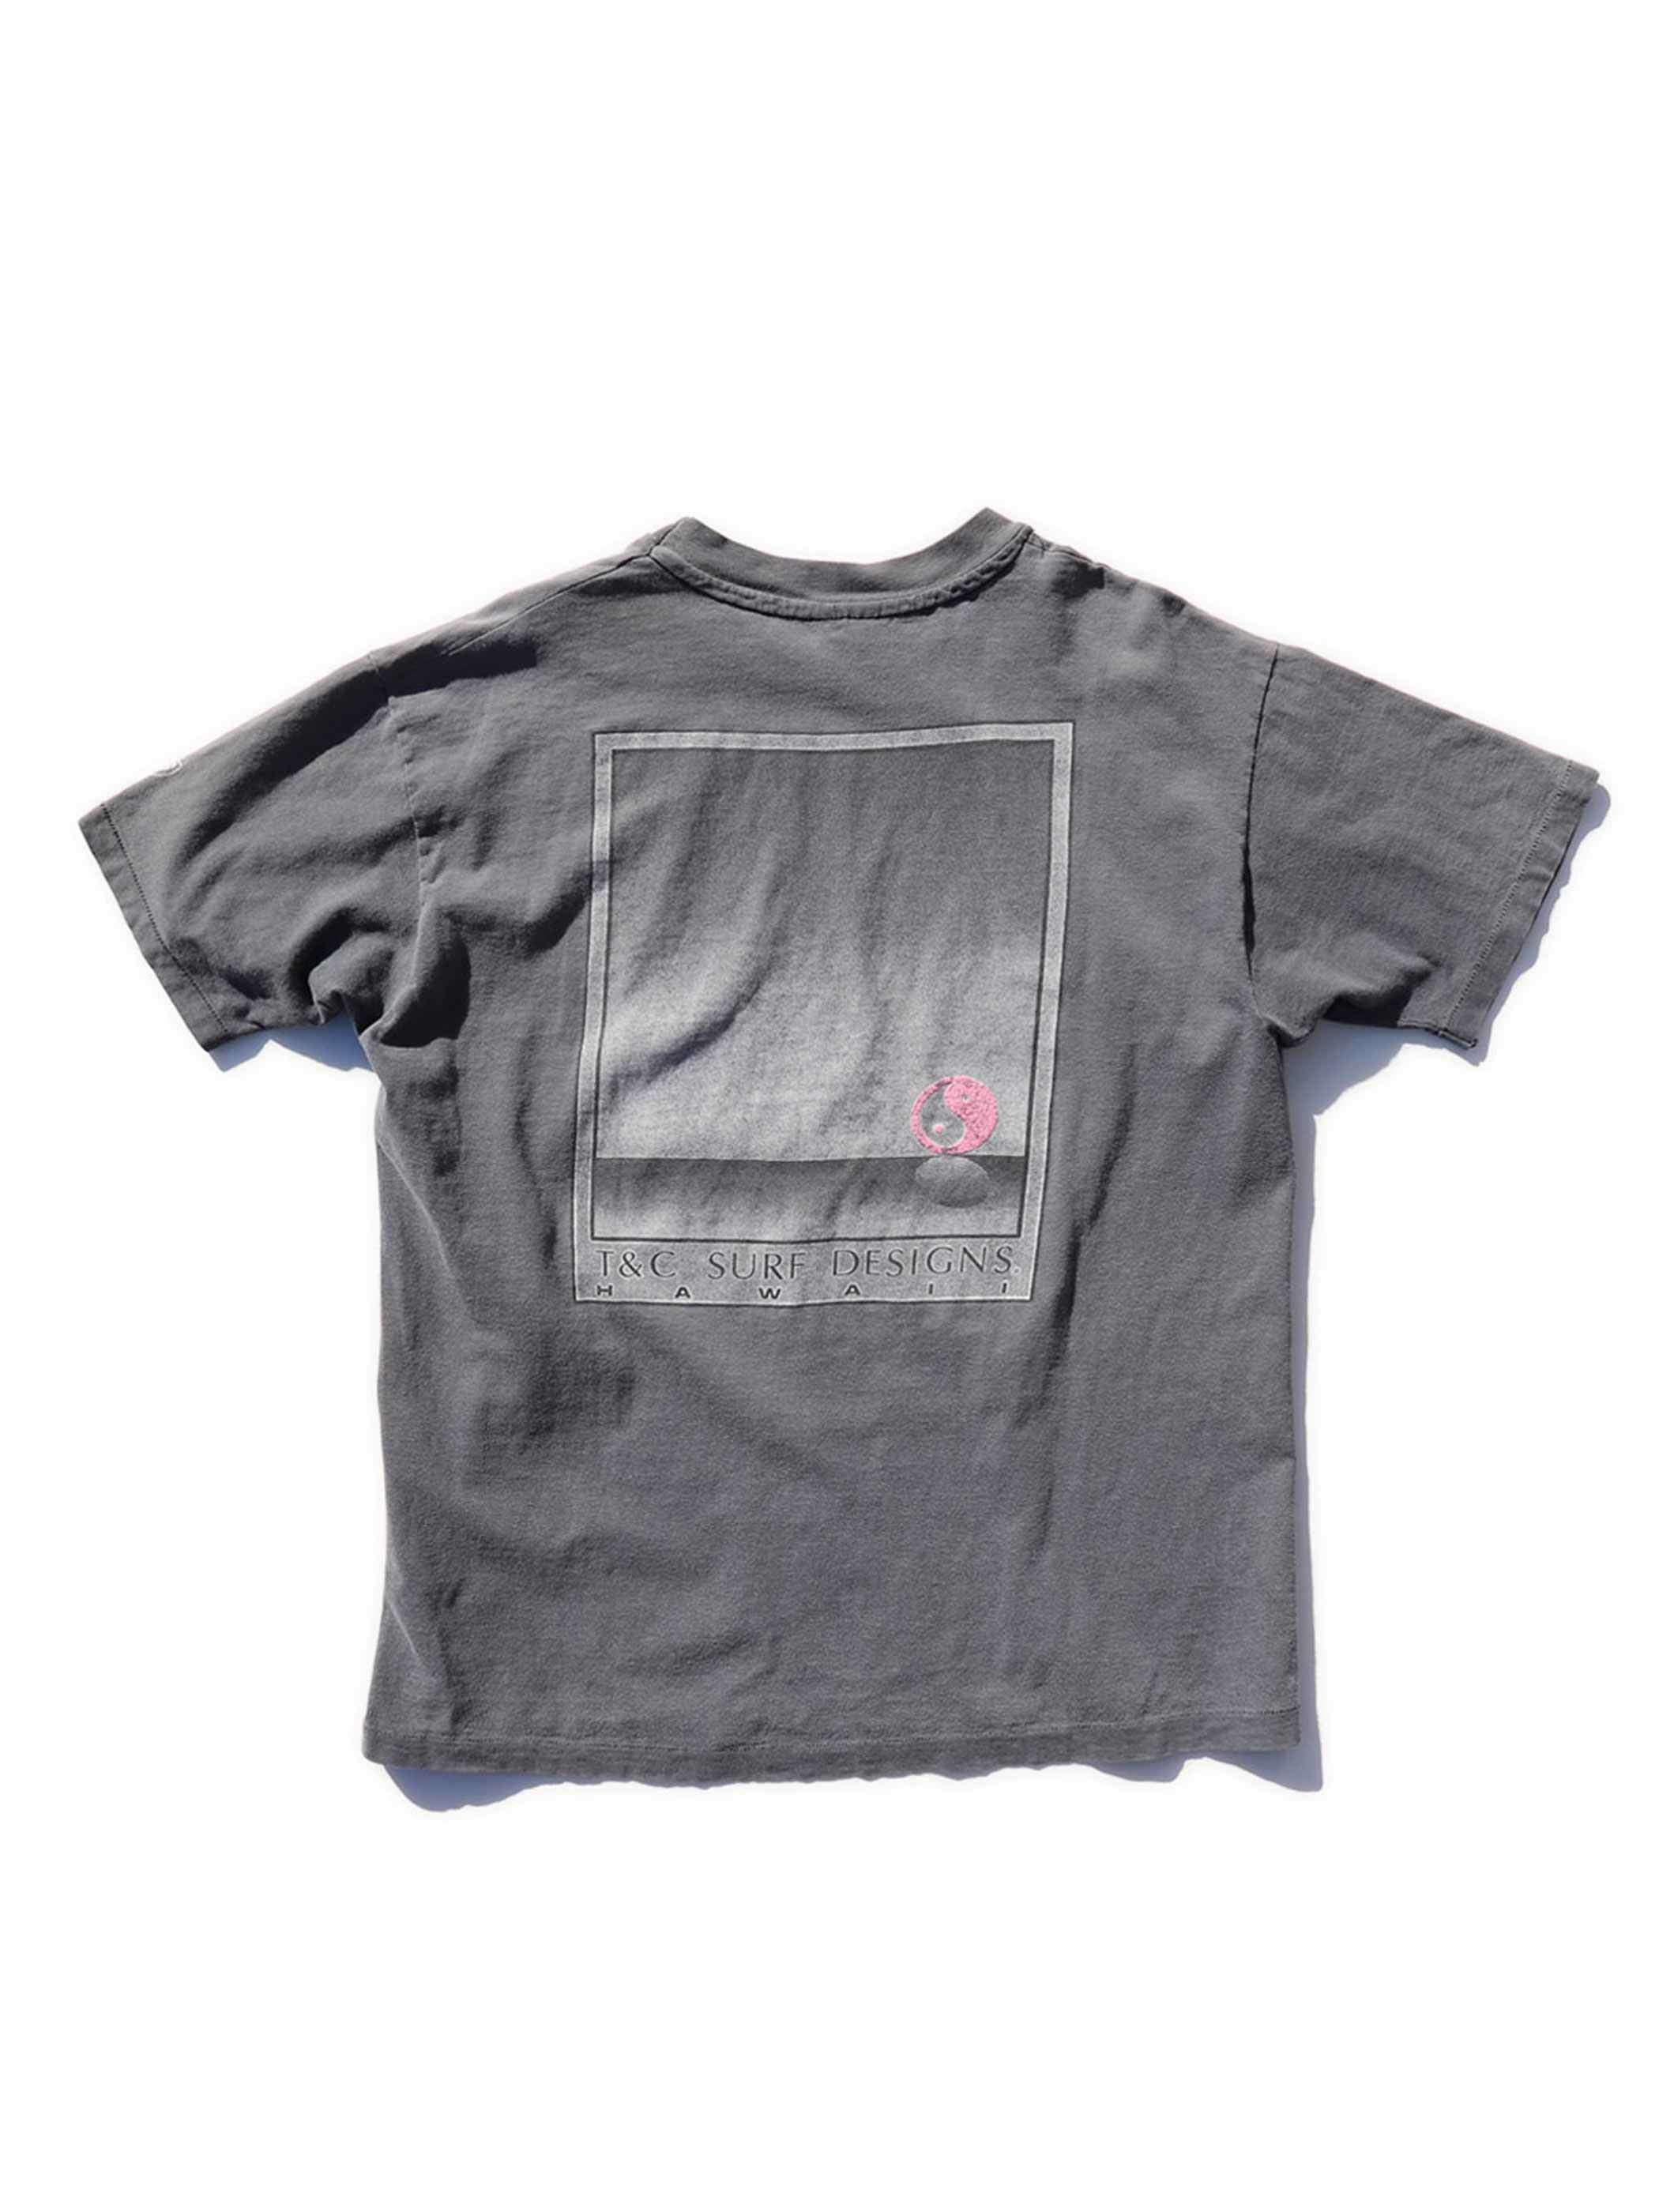 80-90's TOWN & COUNTRY SURF DESIGNS フェードグレー プリントTシャツ [XL]